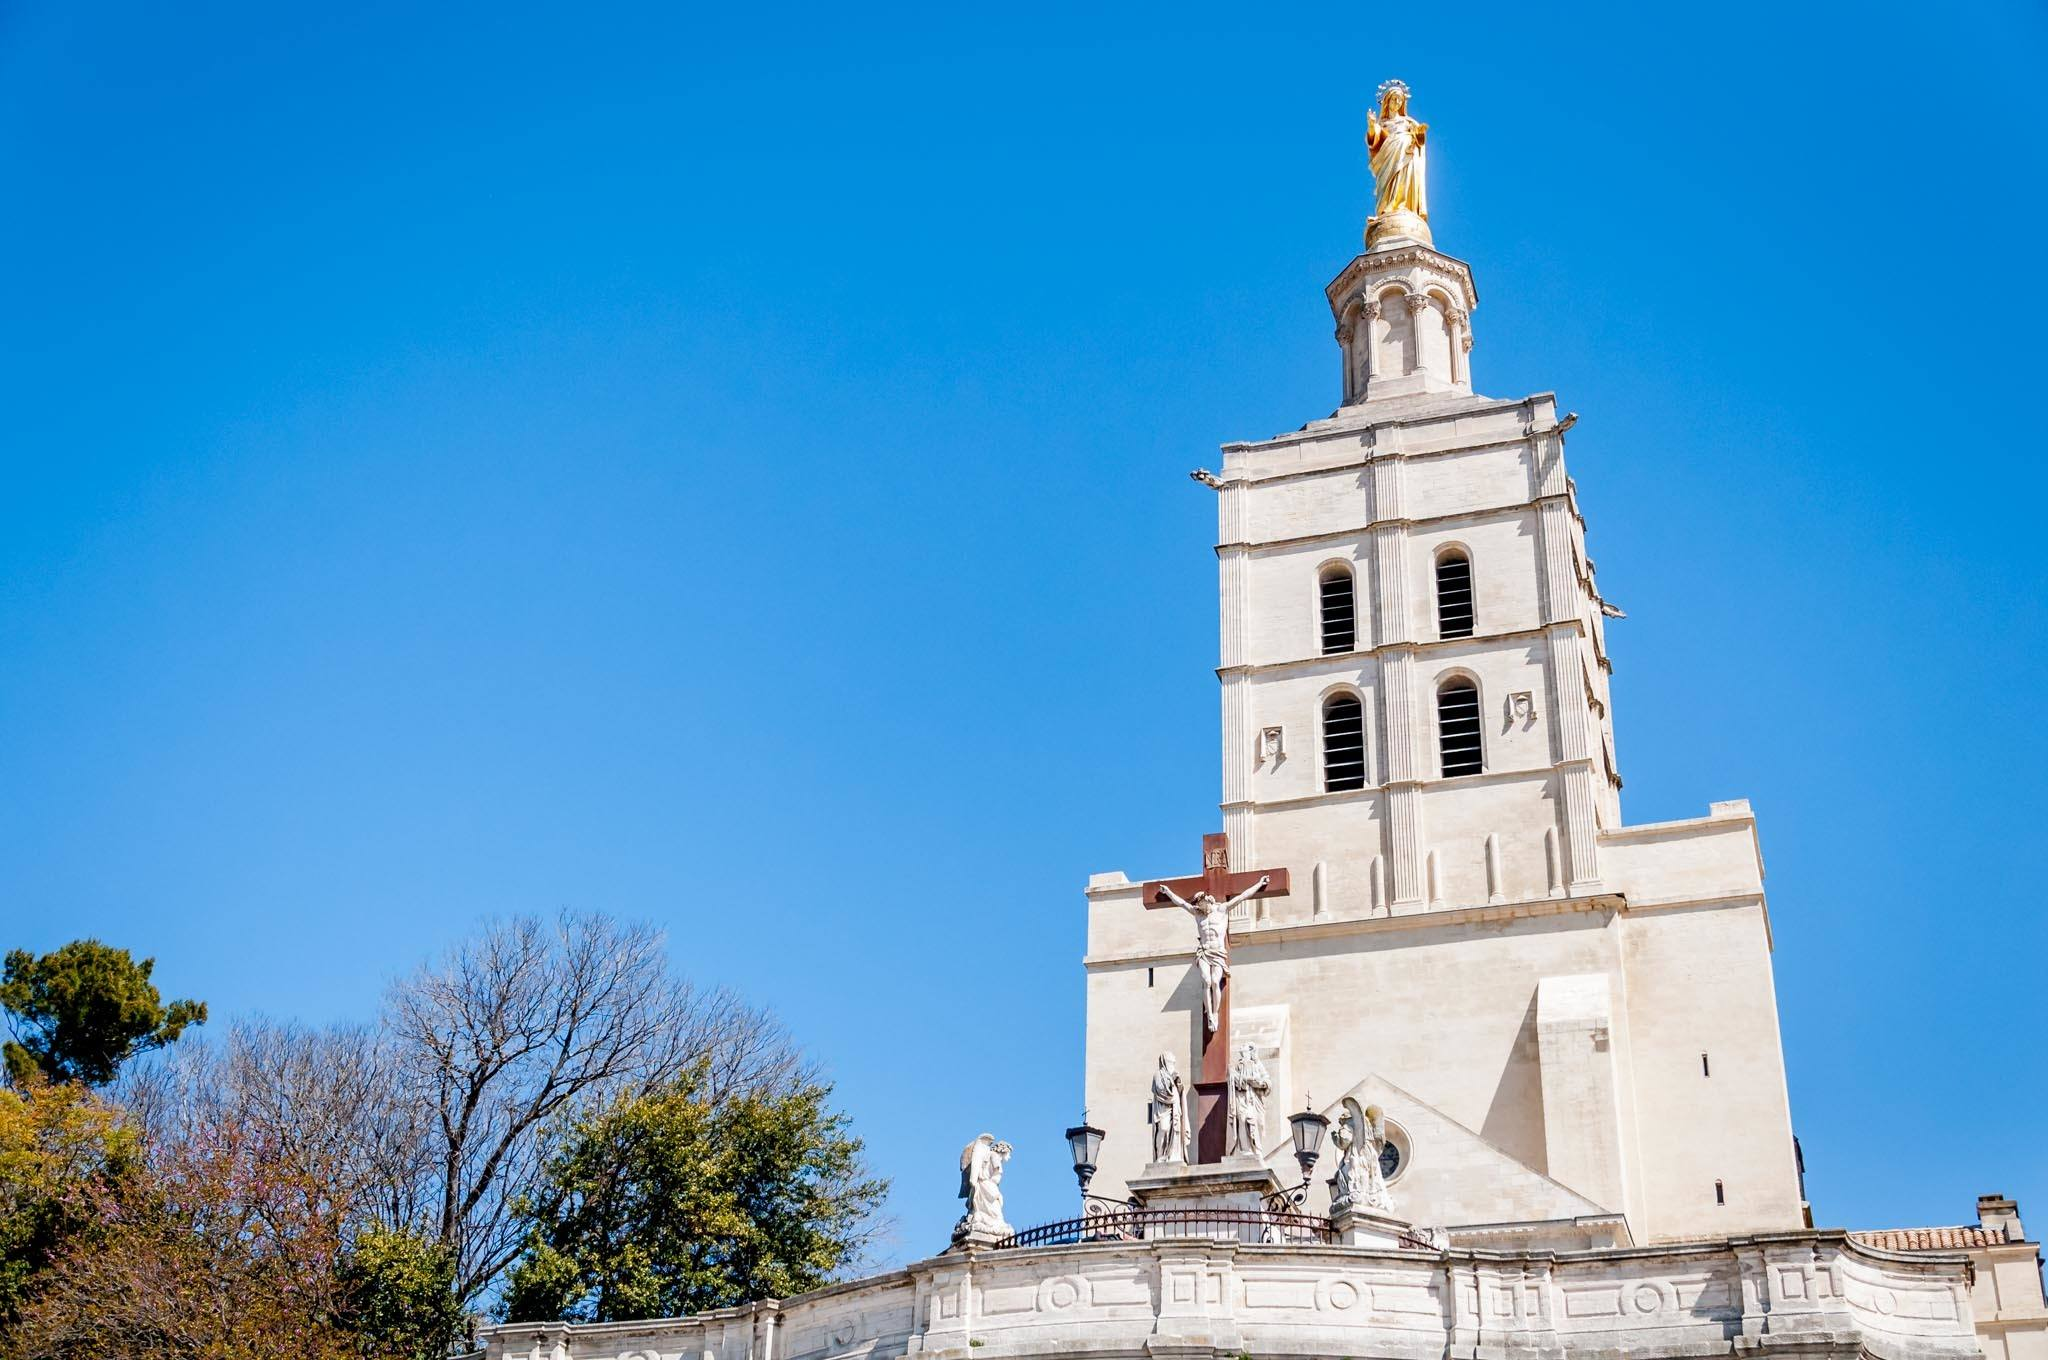 Avignon Cathedral bell tower topped with gold statue of Virgin Mary